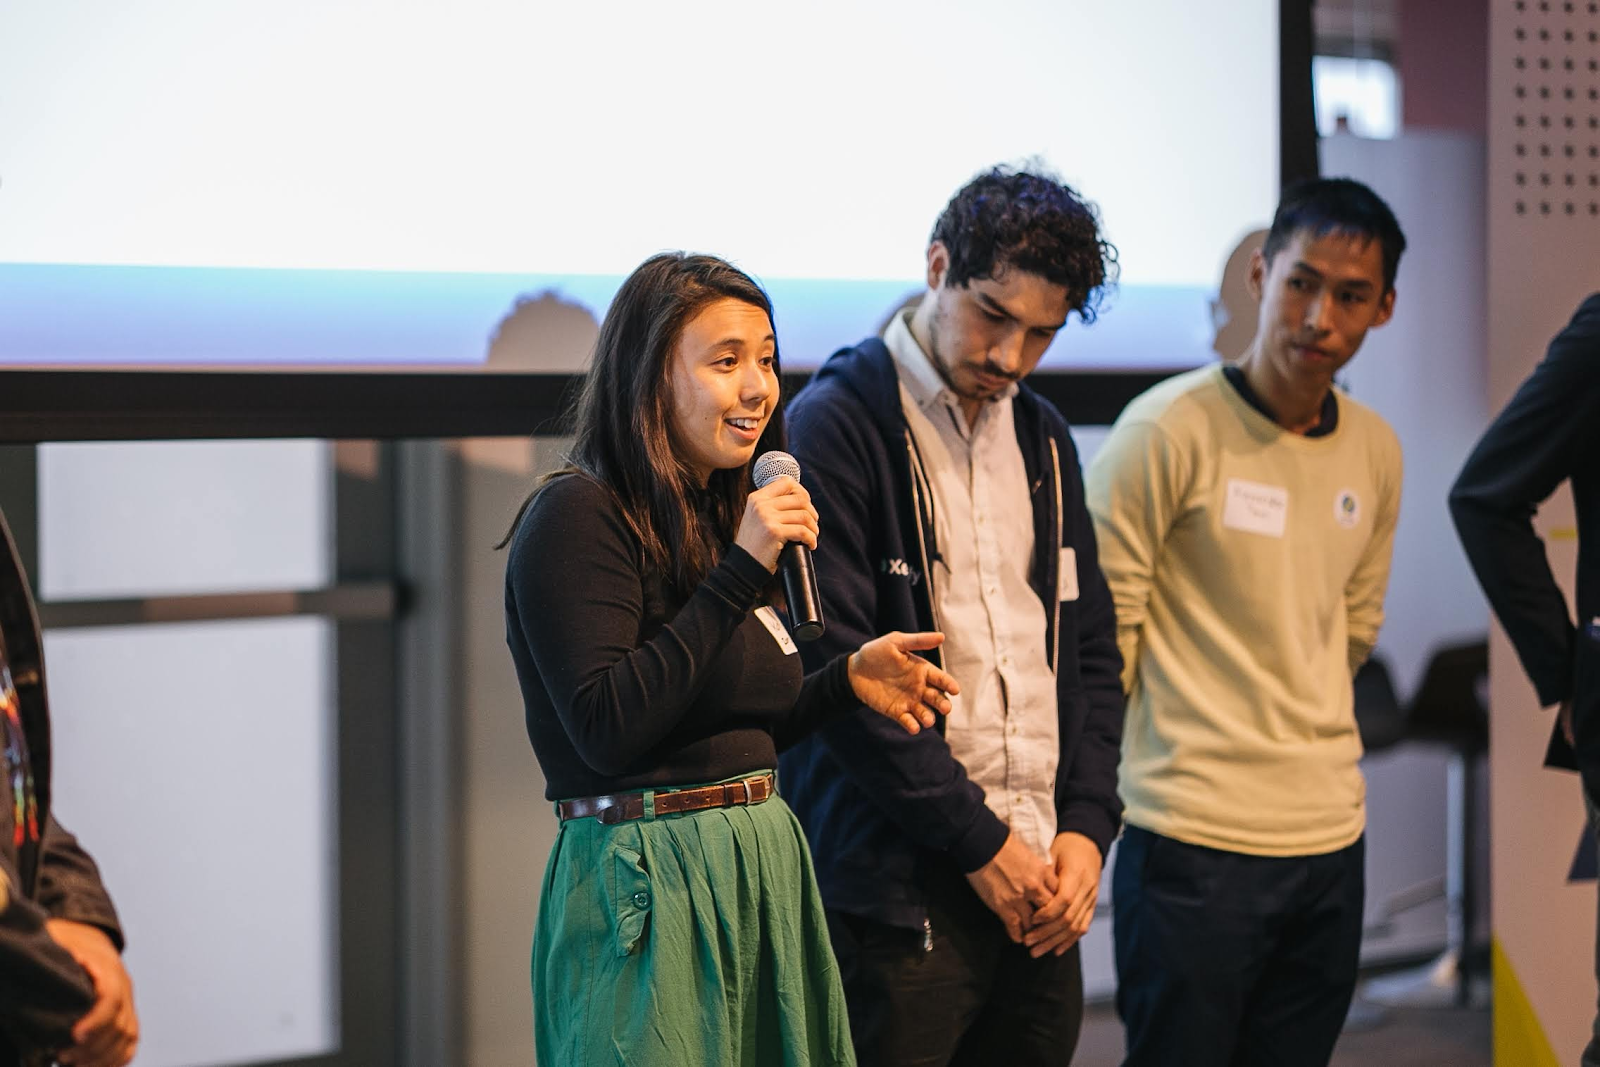 Katrie Lowie, co-founder of Berlin-based Domi, speaking at the SSI Incubator launch event last Tuesday.